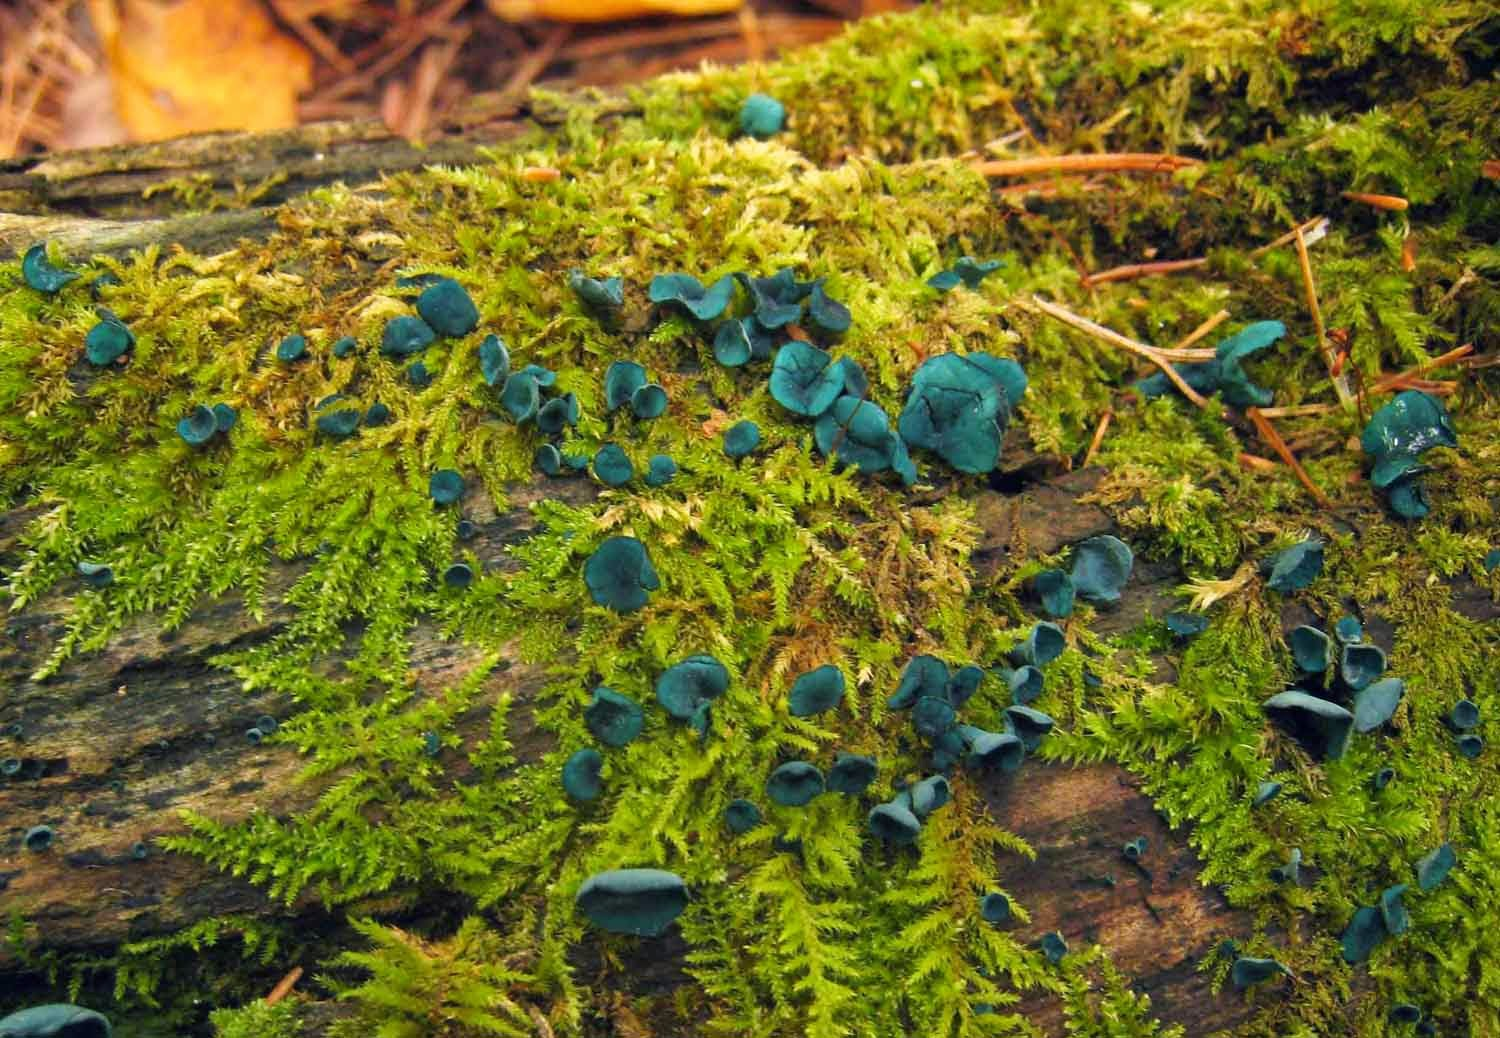 Chlorociboria produces blue-green fruit bodies.